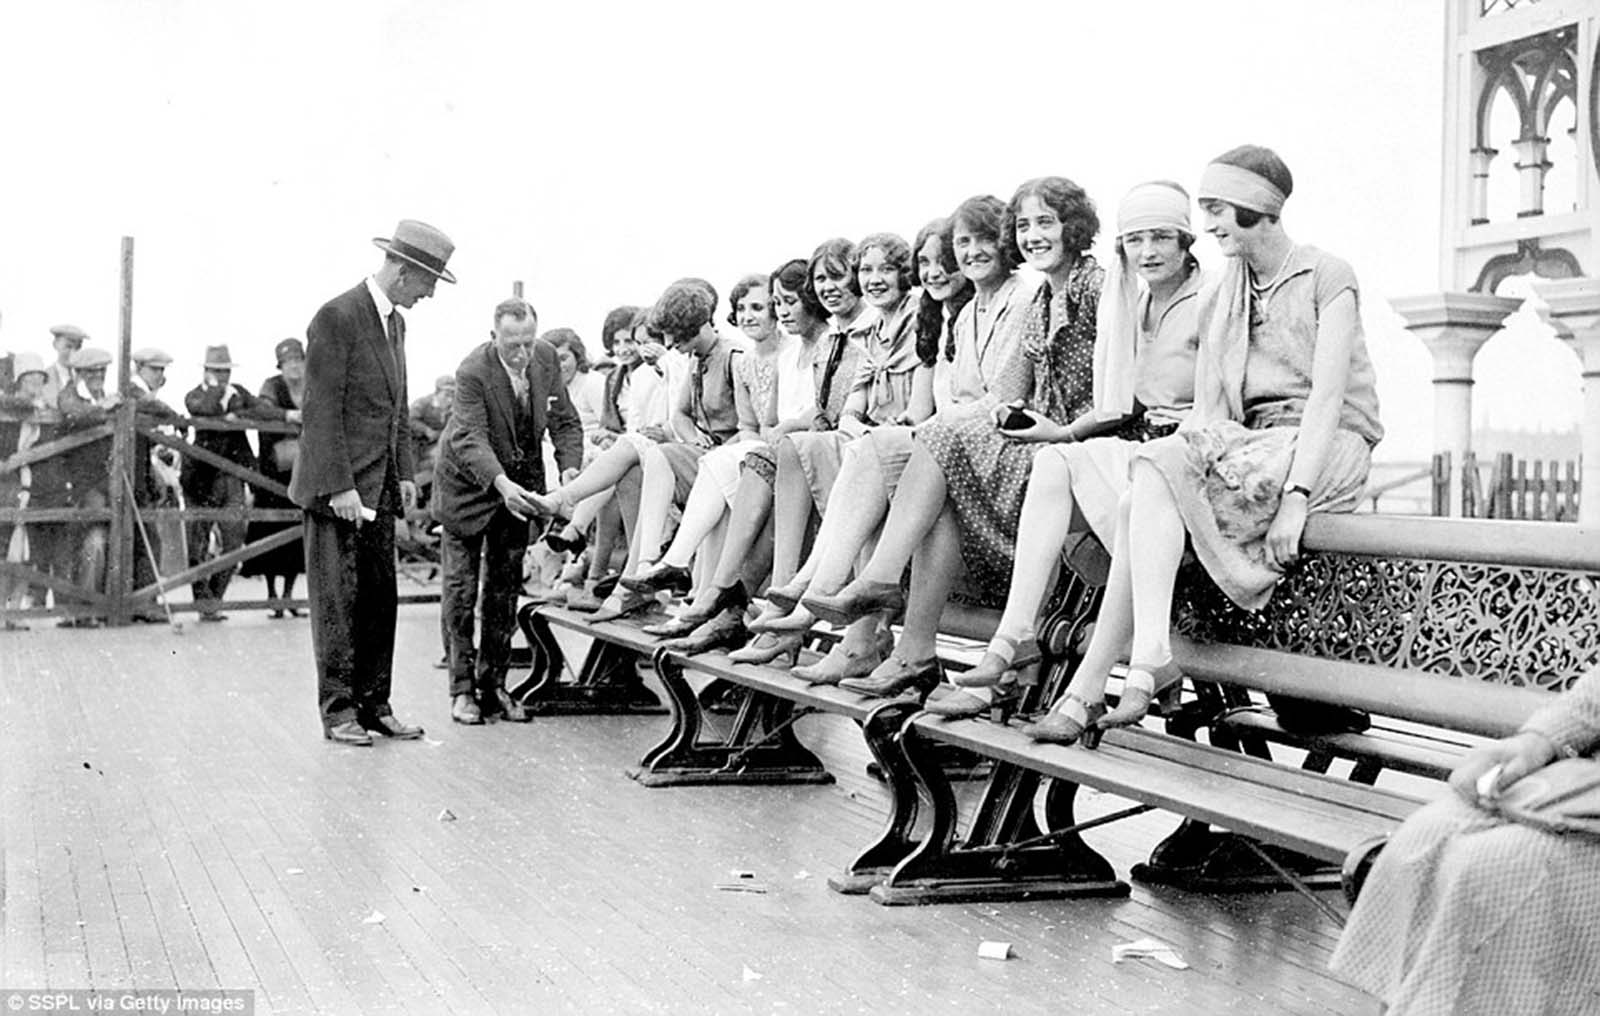 Judges judging ankles in the most beautiful ankles competition held on Palace Pier in connection with the Brighton carnival celebrations.